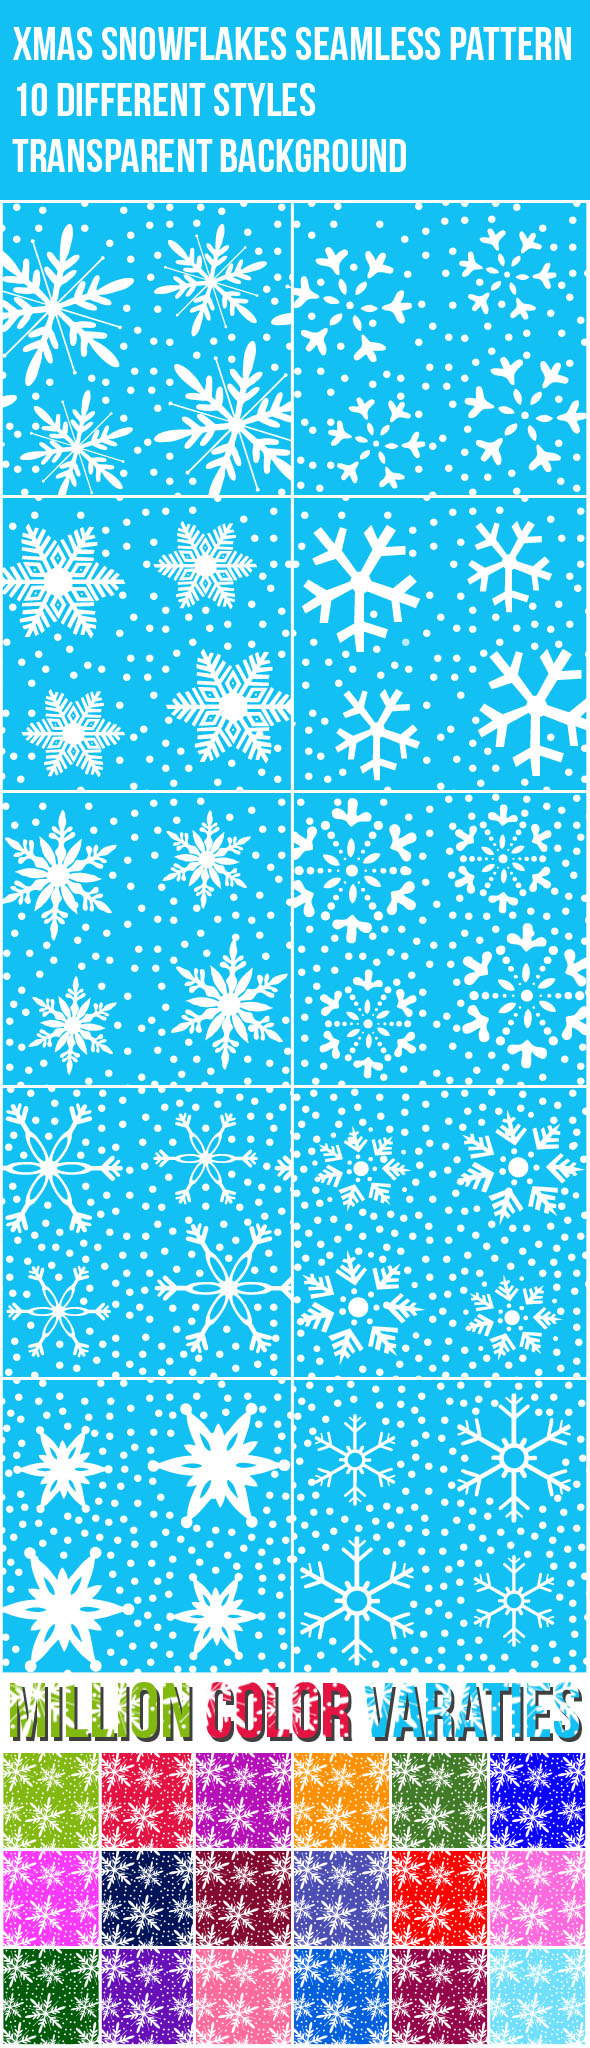 Xmas Snowflakes Seamless Pattern - Nature Textures / Fills / Patterns